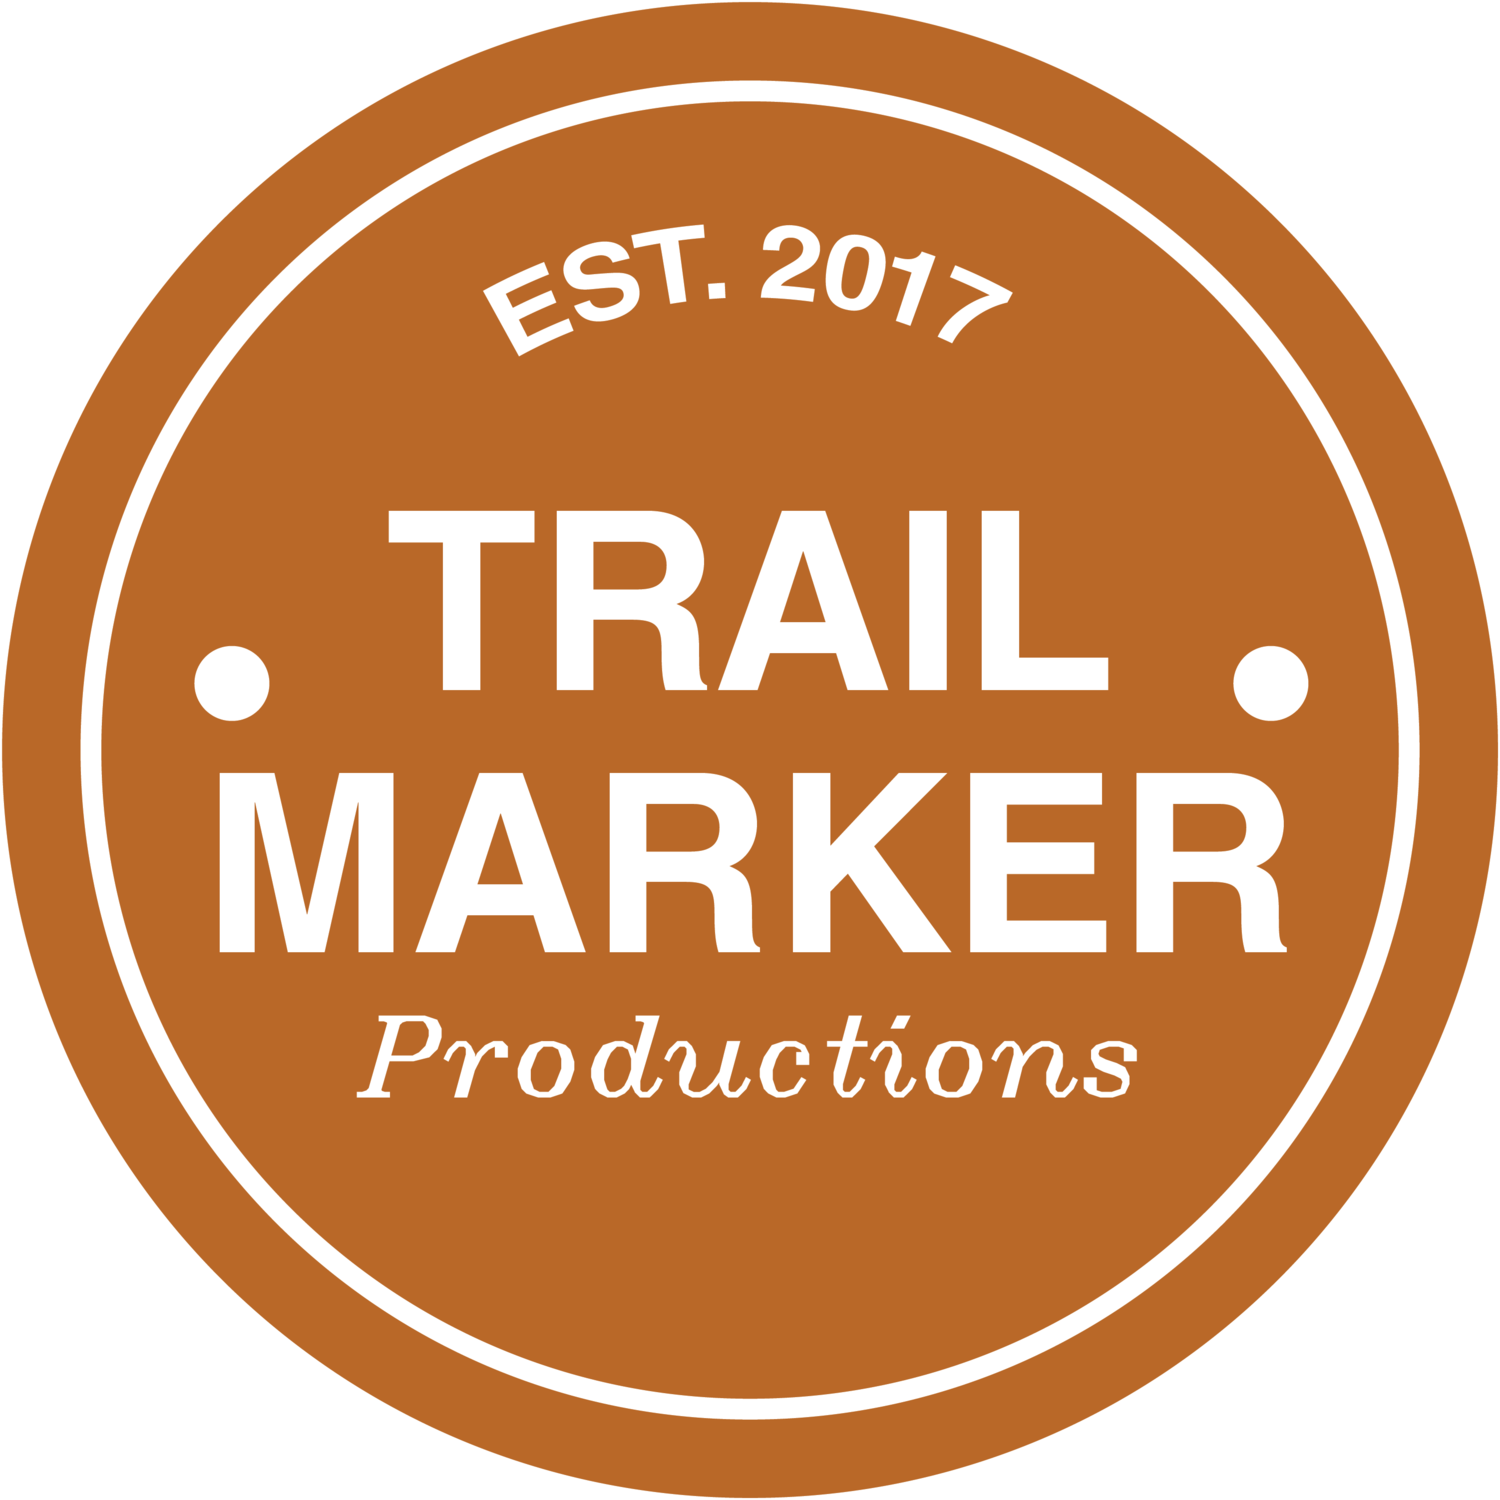 Trail Marker Productions